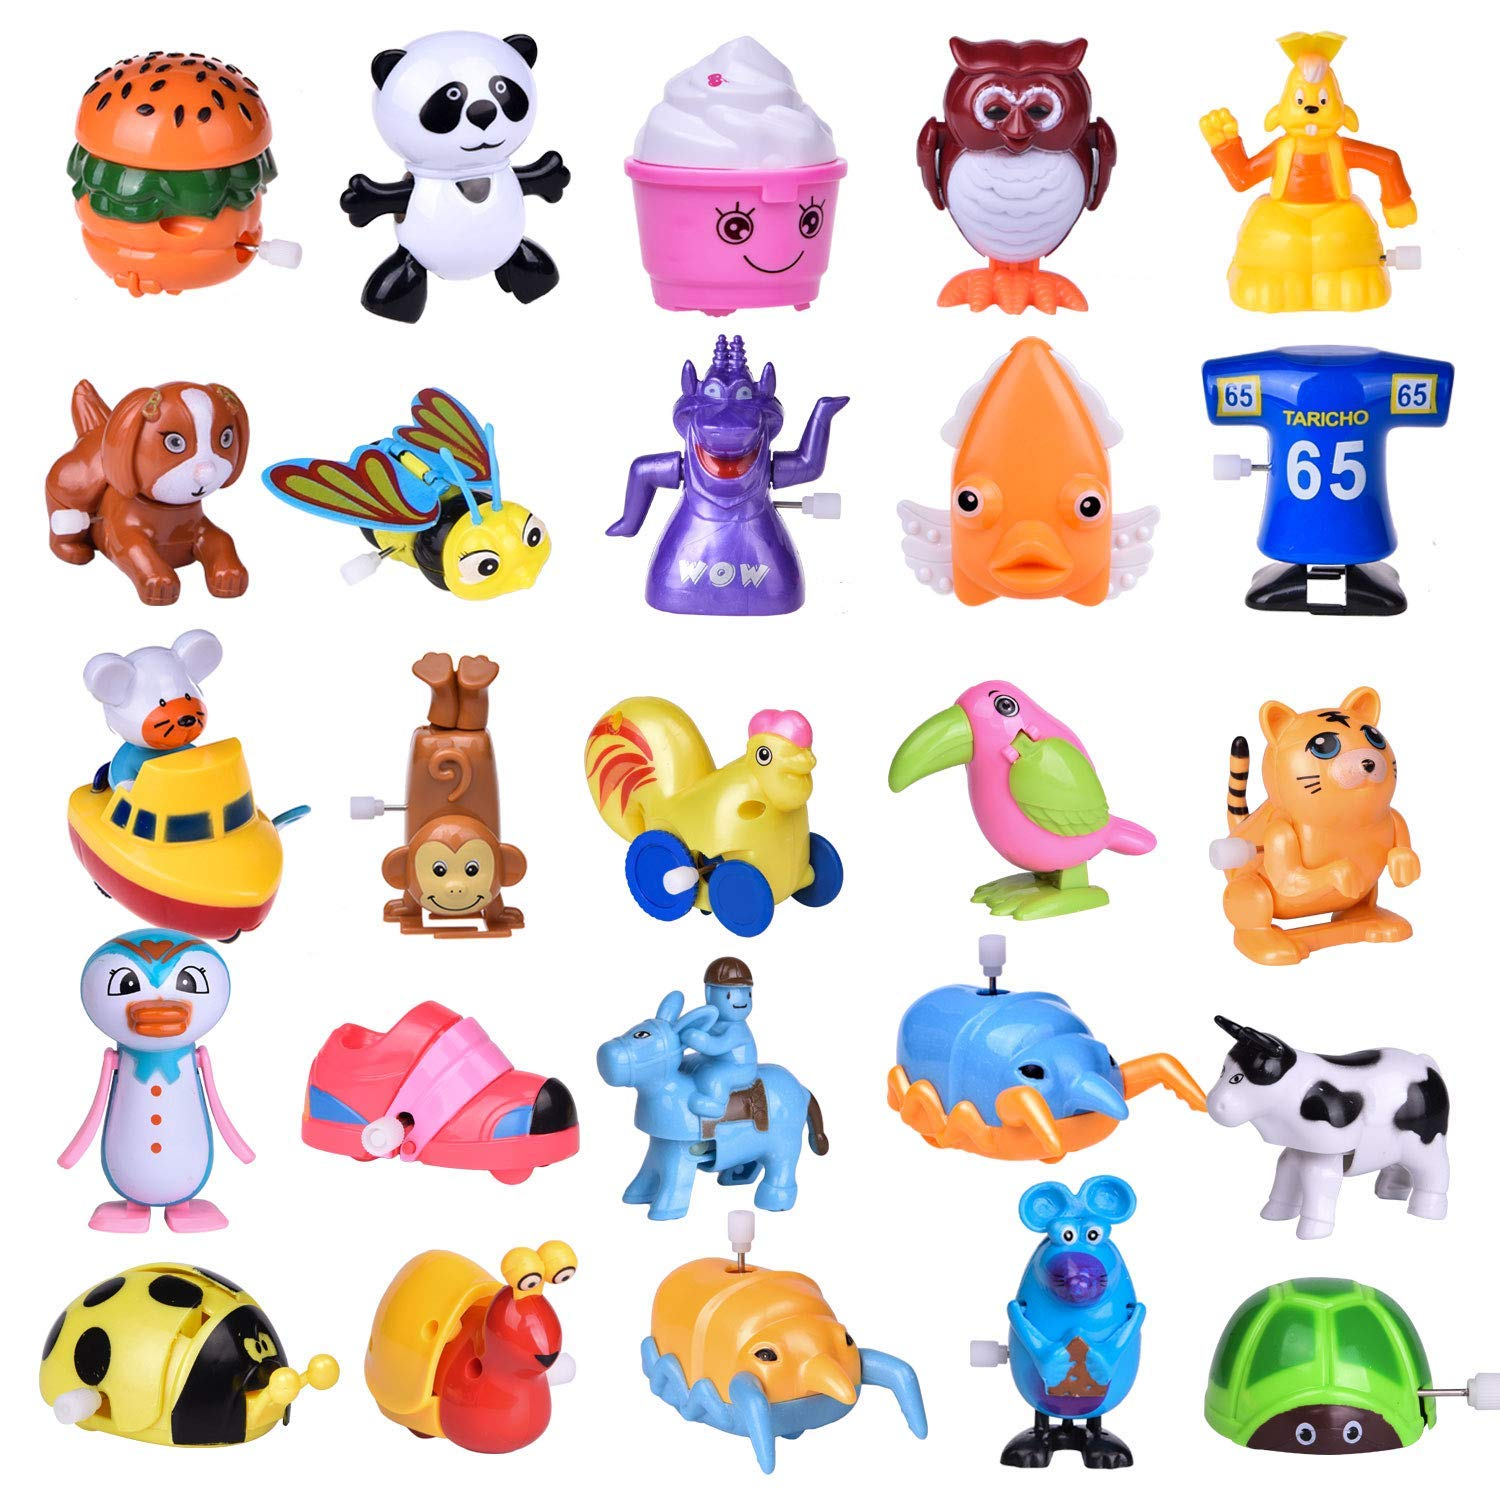 Wind Up Toys 25 PCs Assorted Animal Toys for Easter Party Favors, Easter Egg Fillers